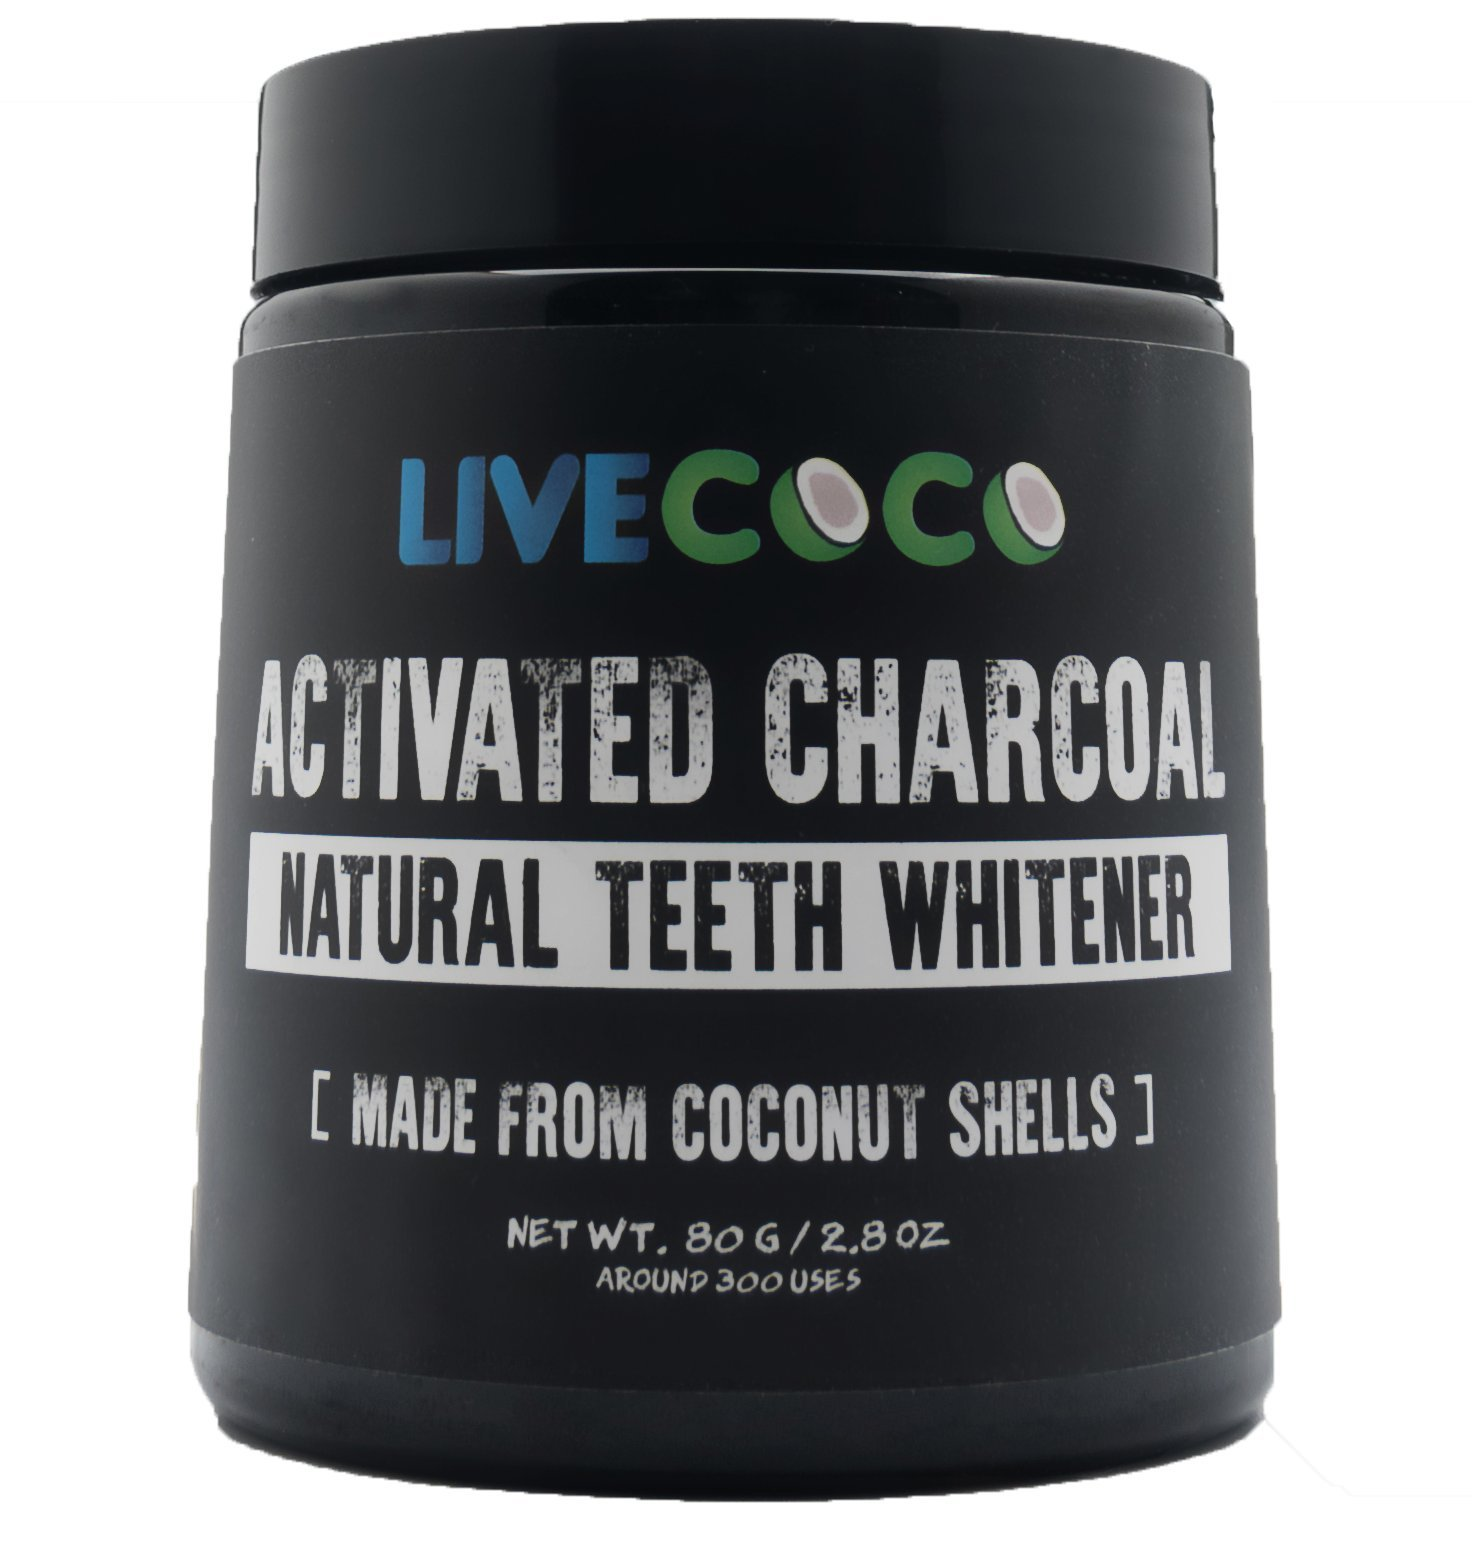 Activated Charcoal for Teeth Whitening, Natural Teeth Whitening using Coconut Shells, RAW & Food Grade with No Artificial Flavours, 100% Natural, Large Tub, 80g=300 Uses from LiveCoco product image